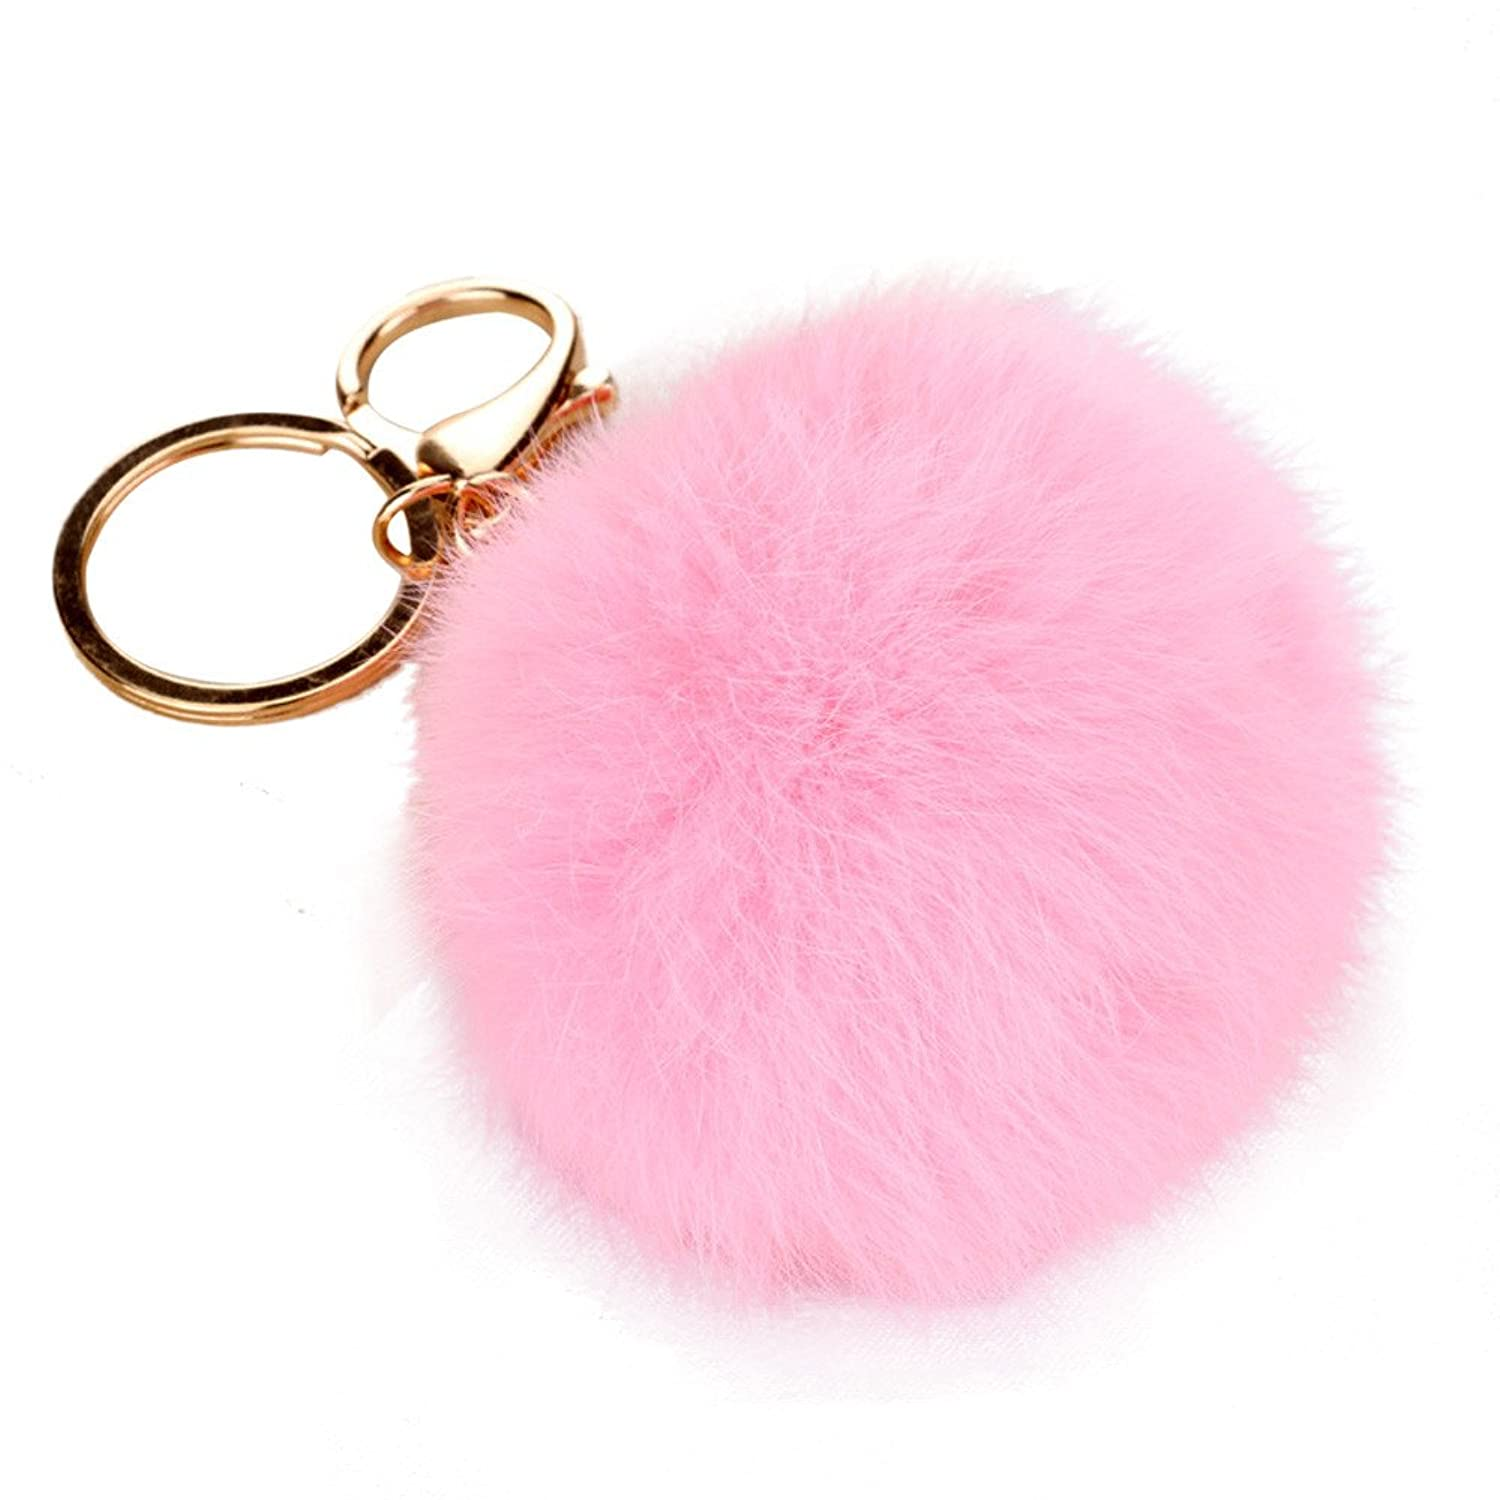 New Keychain Fur Pom Pom Key Chain Faux Pearl Rabbit Fur Hair Bulb Bag Fur Ball Pendant Key Ring For Women Girls Gifts^Keychain A